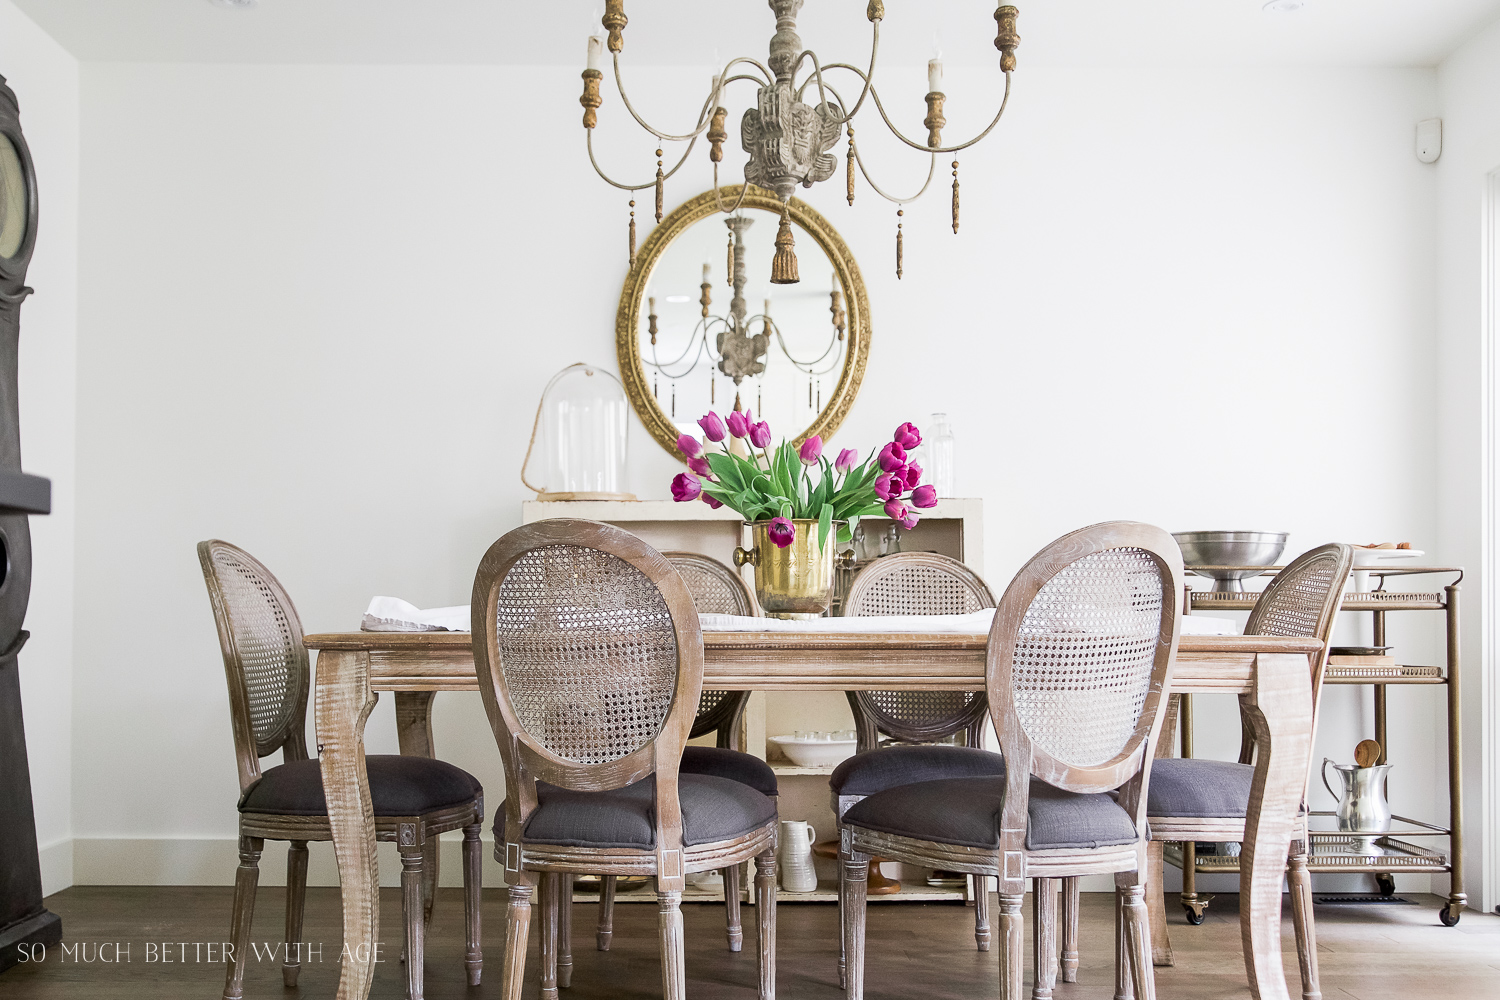 French Vintage Dining Room/French table and chandelier - So Much Better With Age